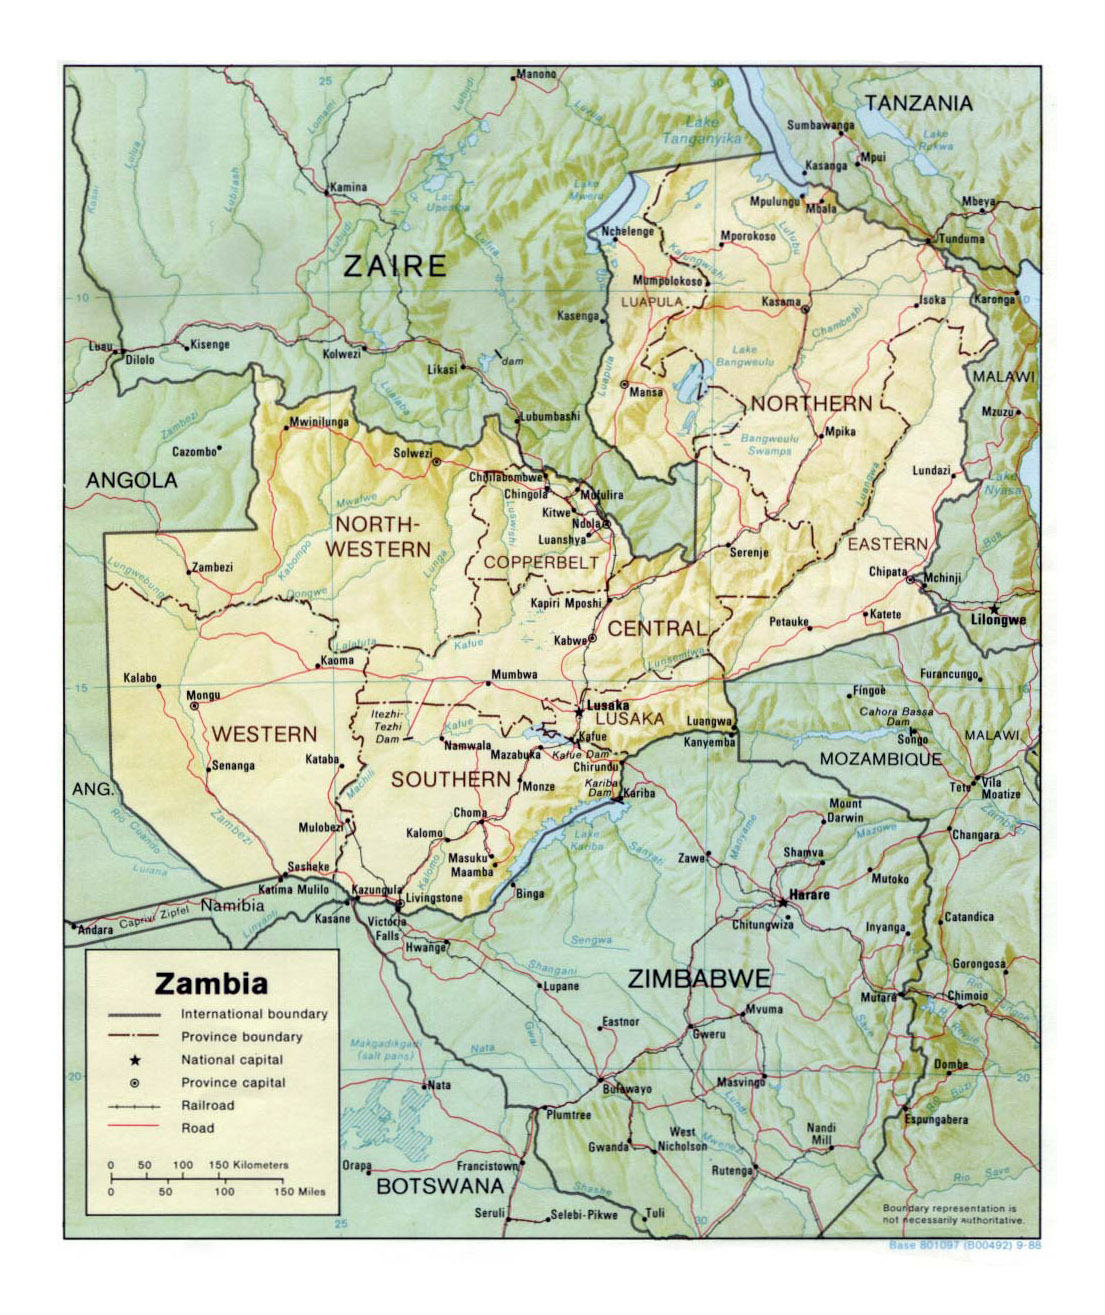 Detailed political and administrative map of Zambia with relief